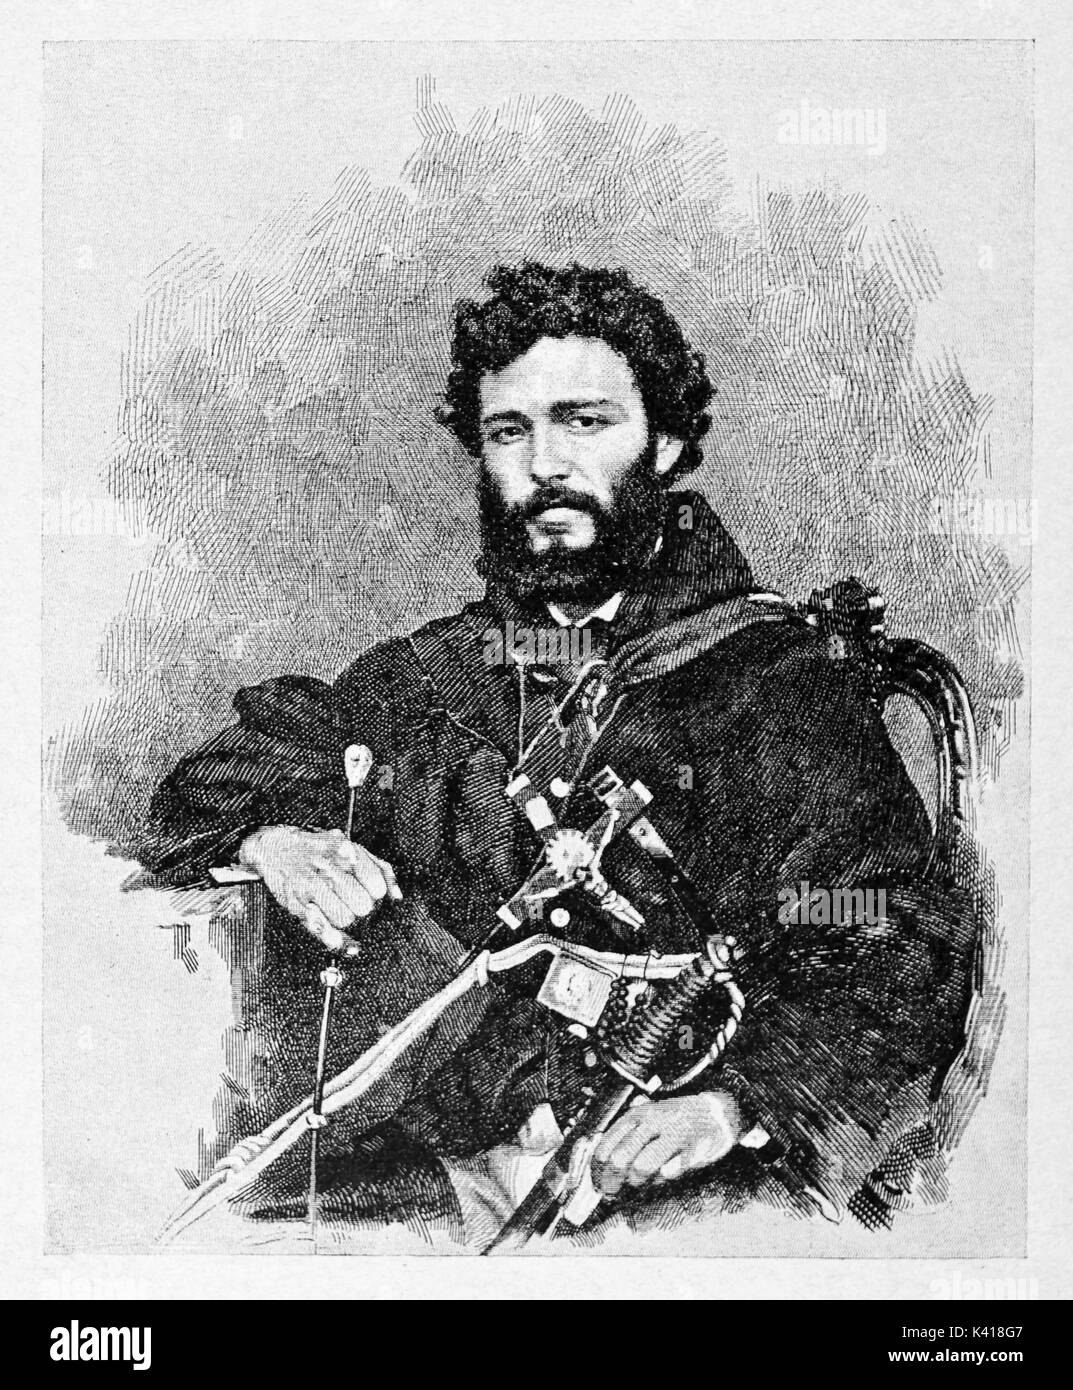 Portrait of an ancient young revolutionary soldier with black beard. Friar Pantaleo (1831 - 1879) Italian monk and patriot. By E. Matania published on Garibaldi e i Suoi Tempi Milan Italy 1884 - Stock Image